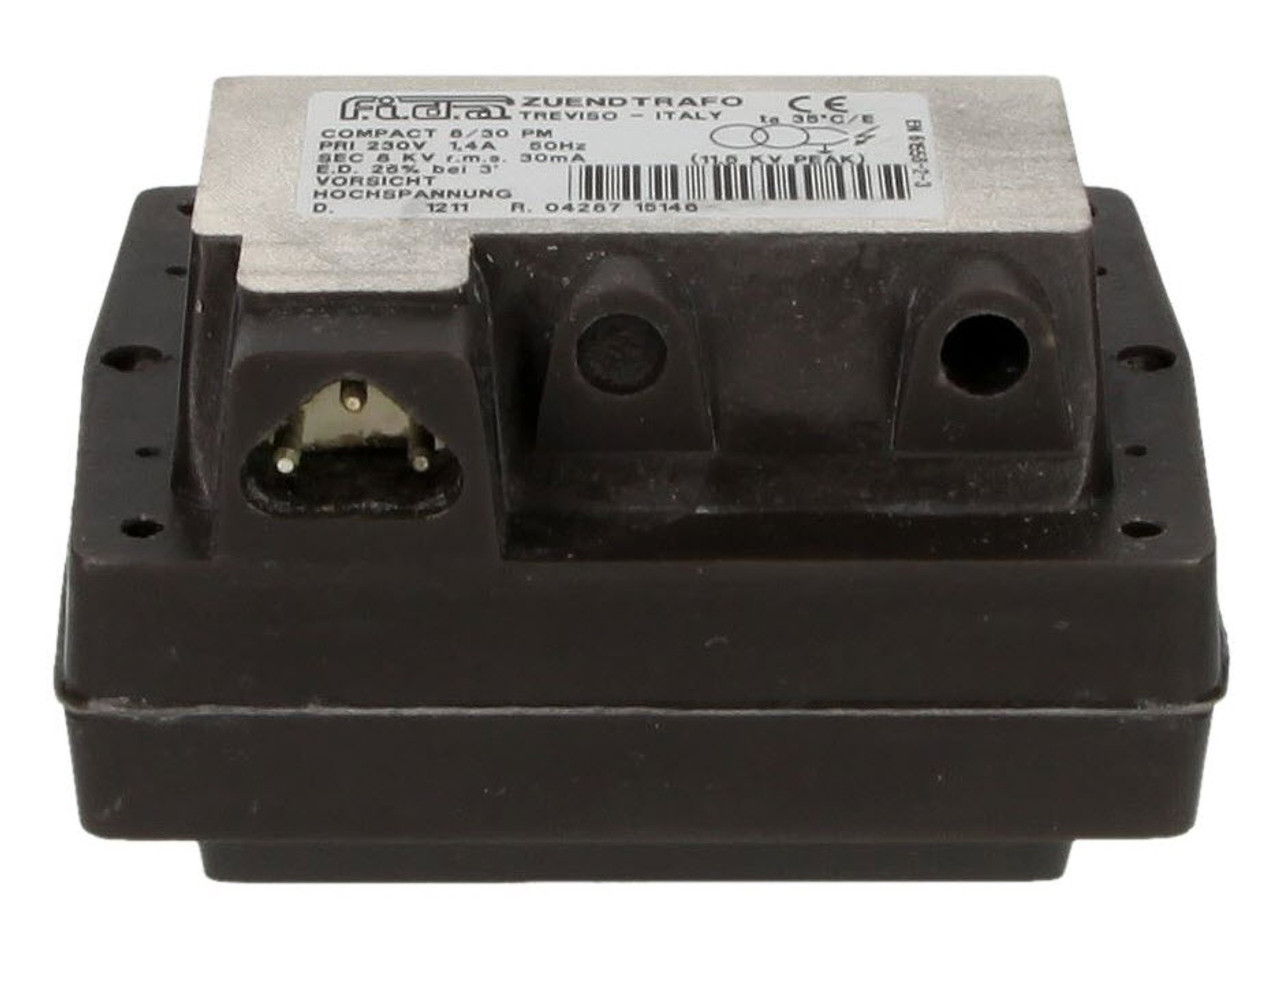 8/30 PM, FIDA ignition transformer